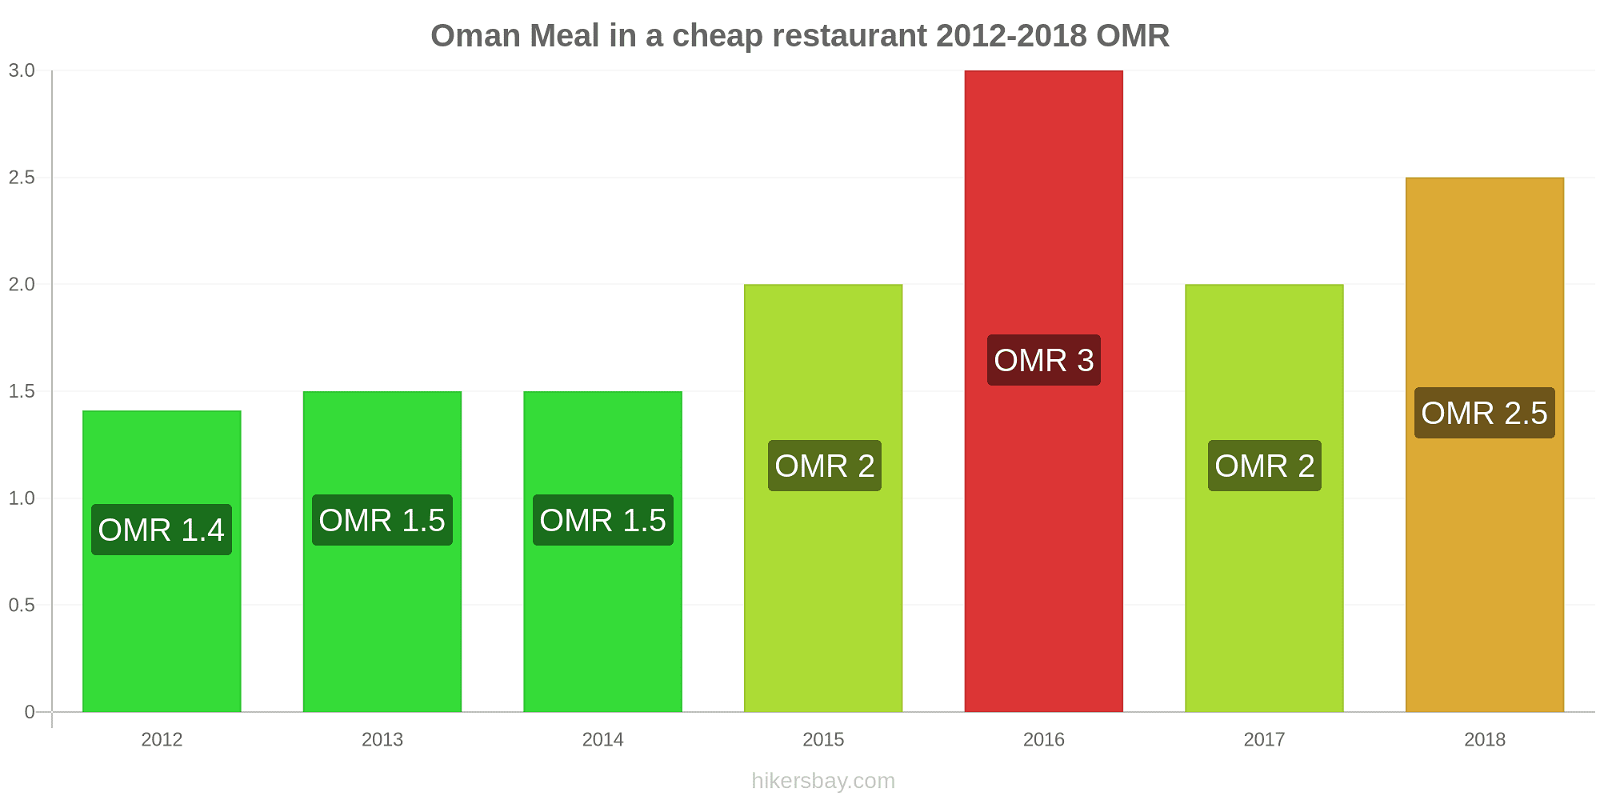 Oman price changes Meal in a cheap restaurant hikersbay.com